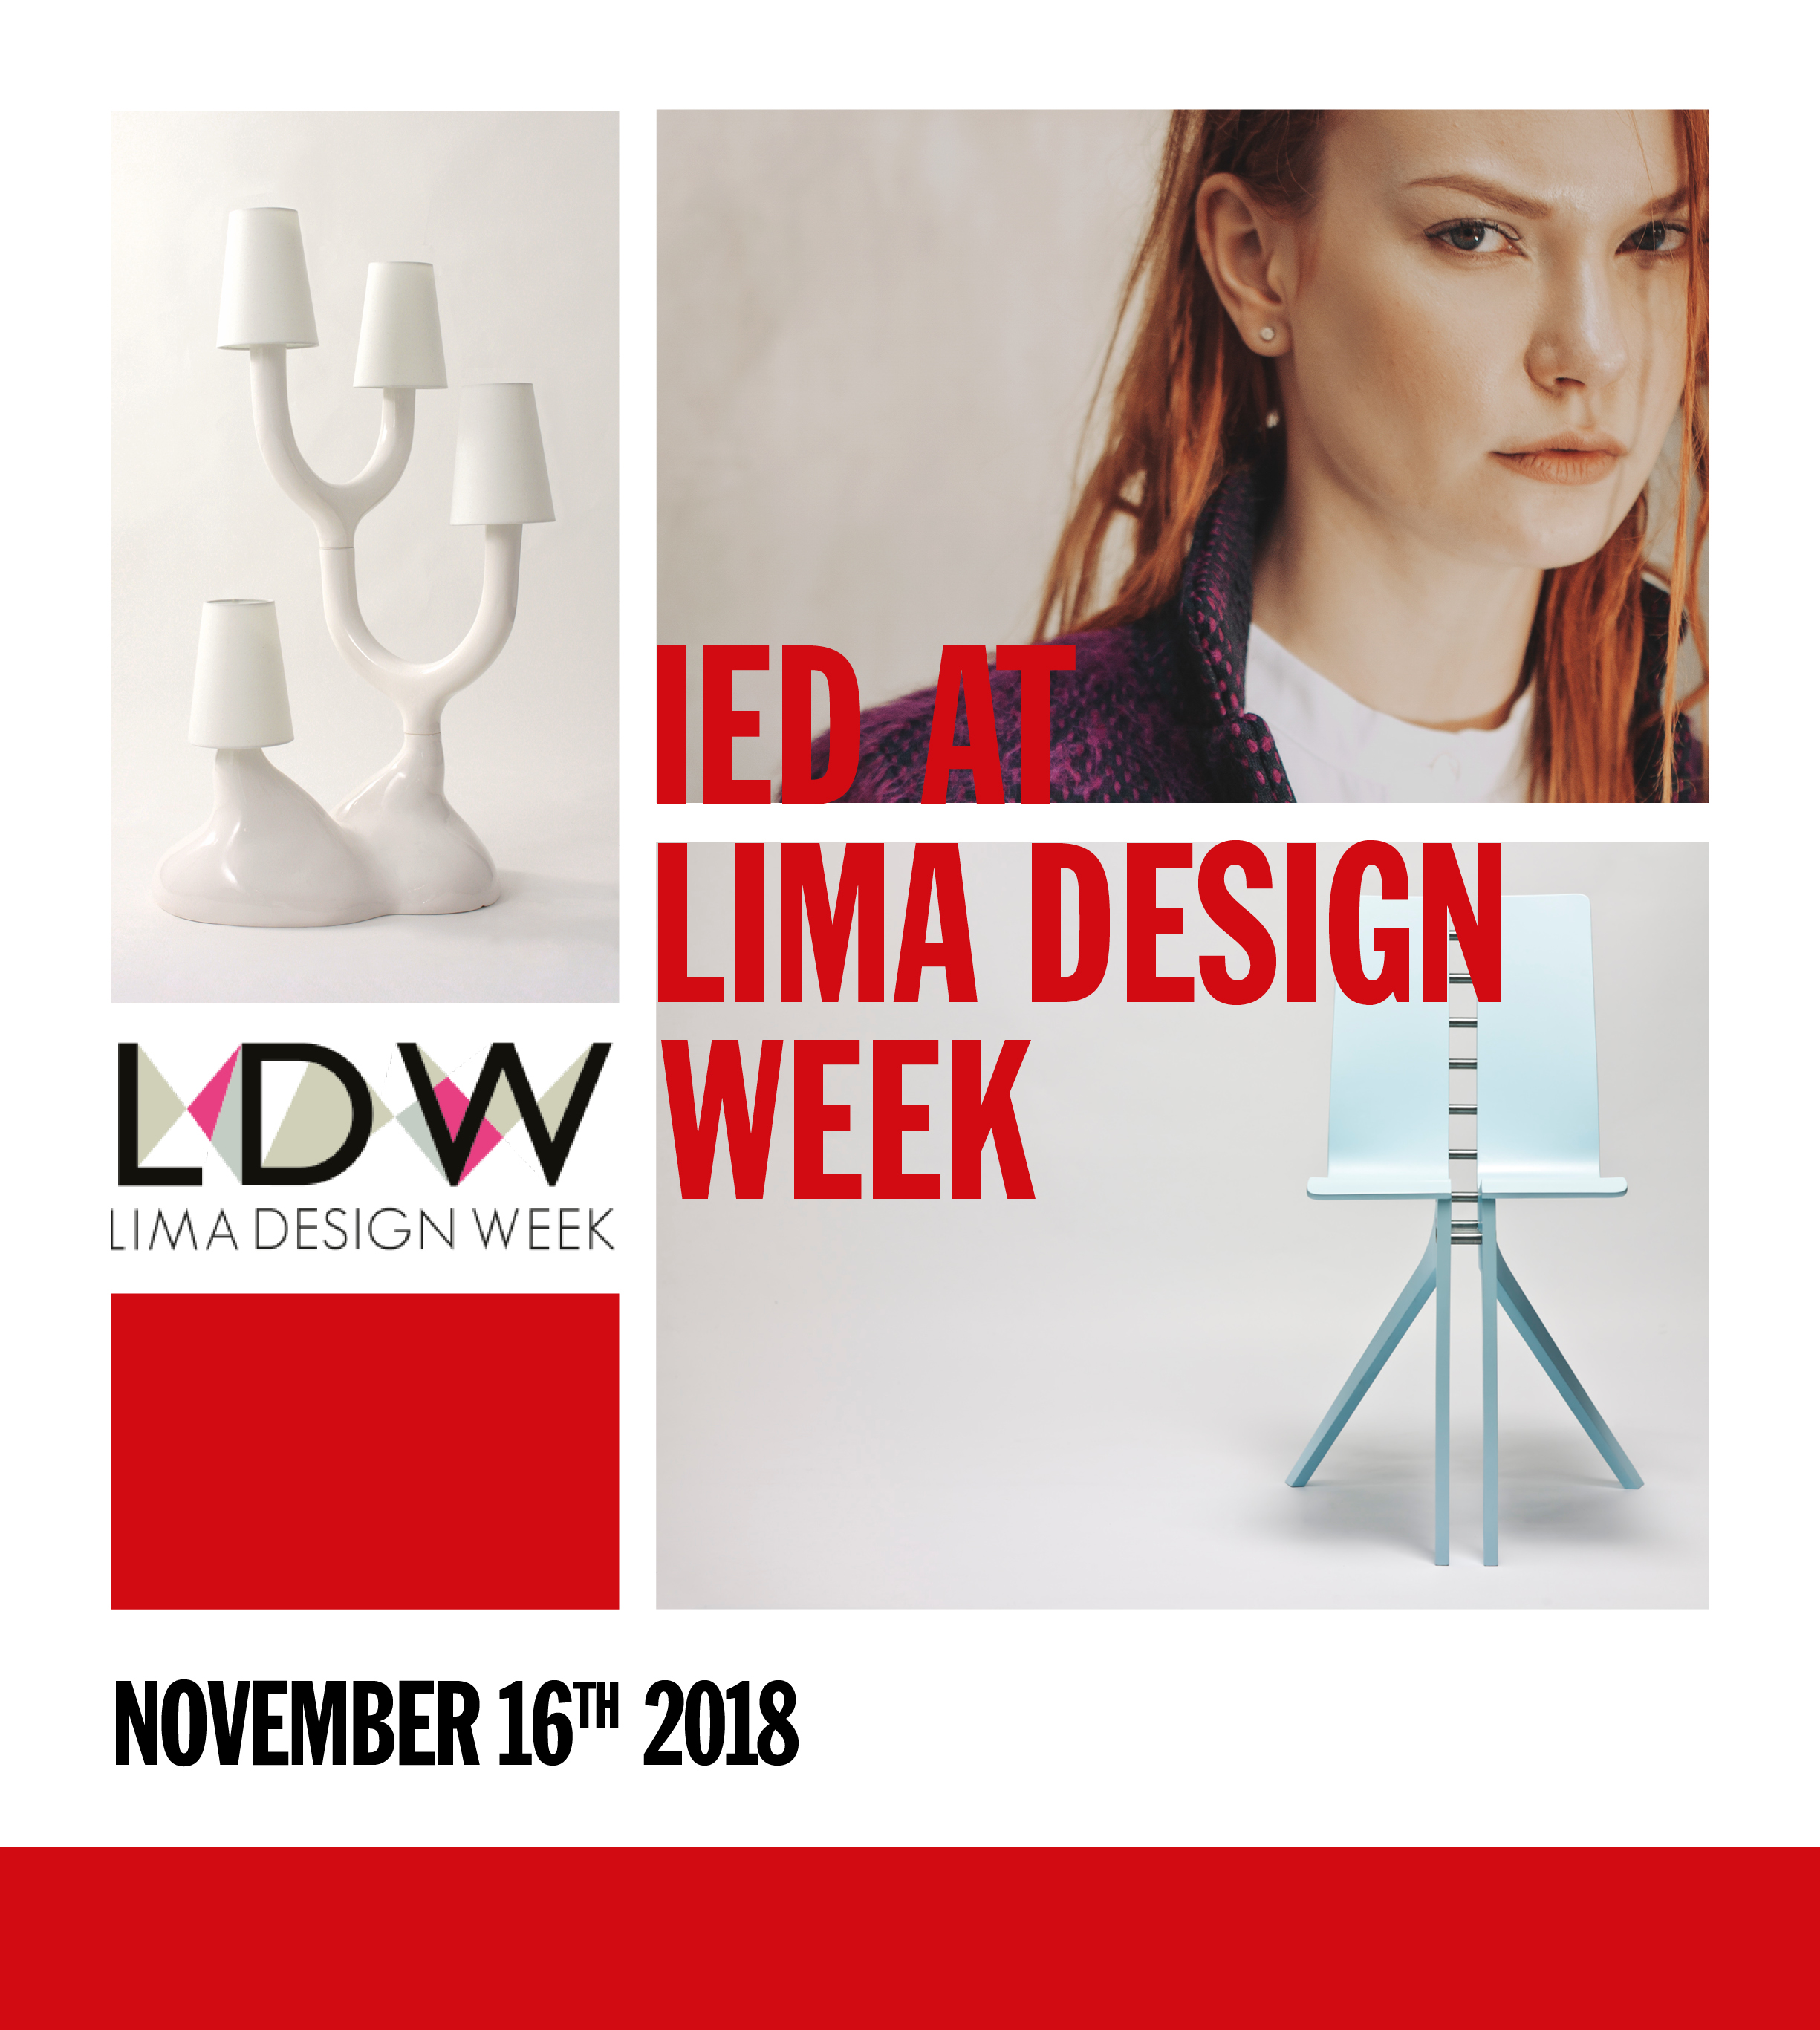 Design And Fashion Courses Ied Istituto Europeo Di 2012 Gli Fuse Diagram Under Hood Event Scholarships